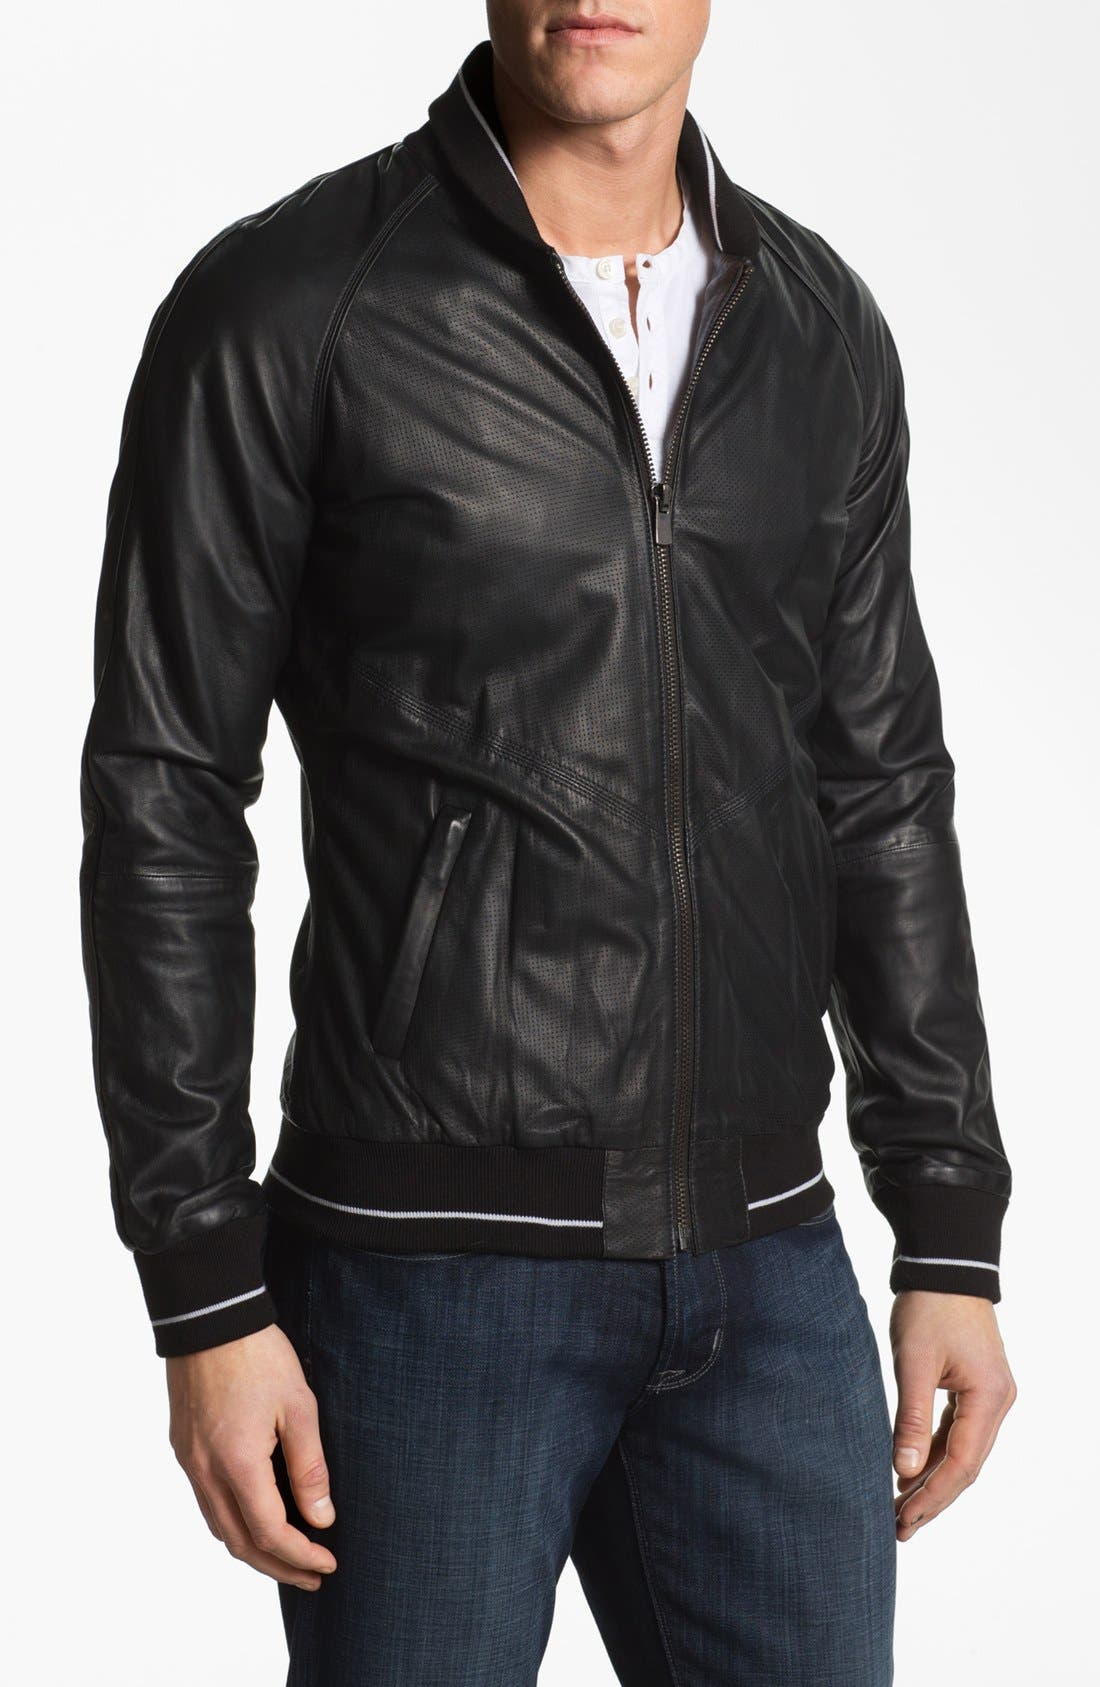 Main Image - La Marque Leather Baseball Jacket